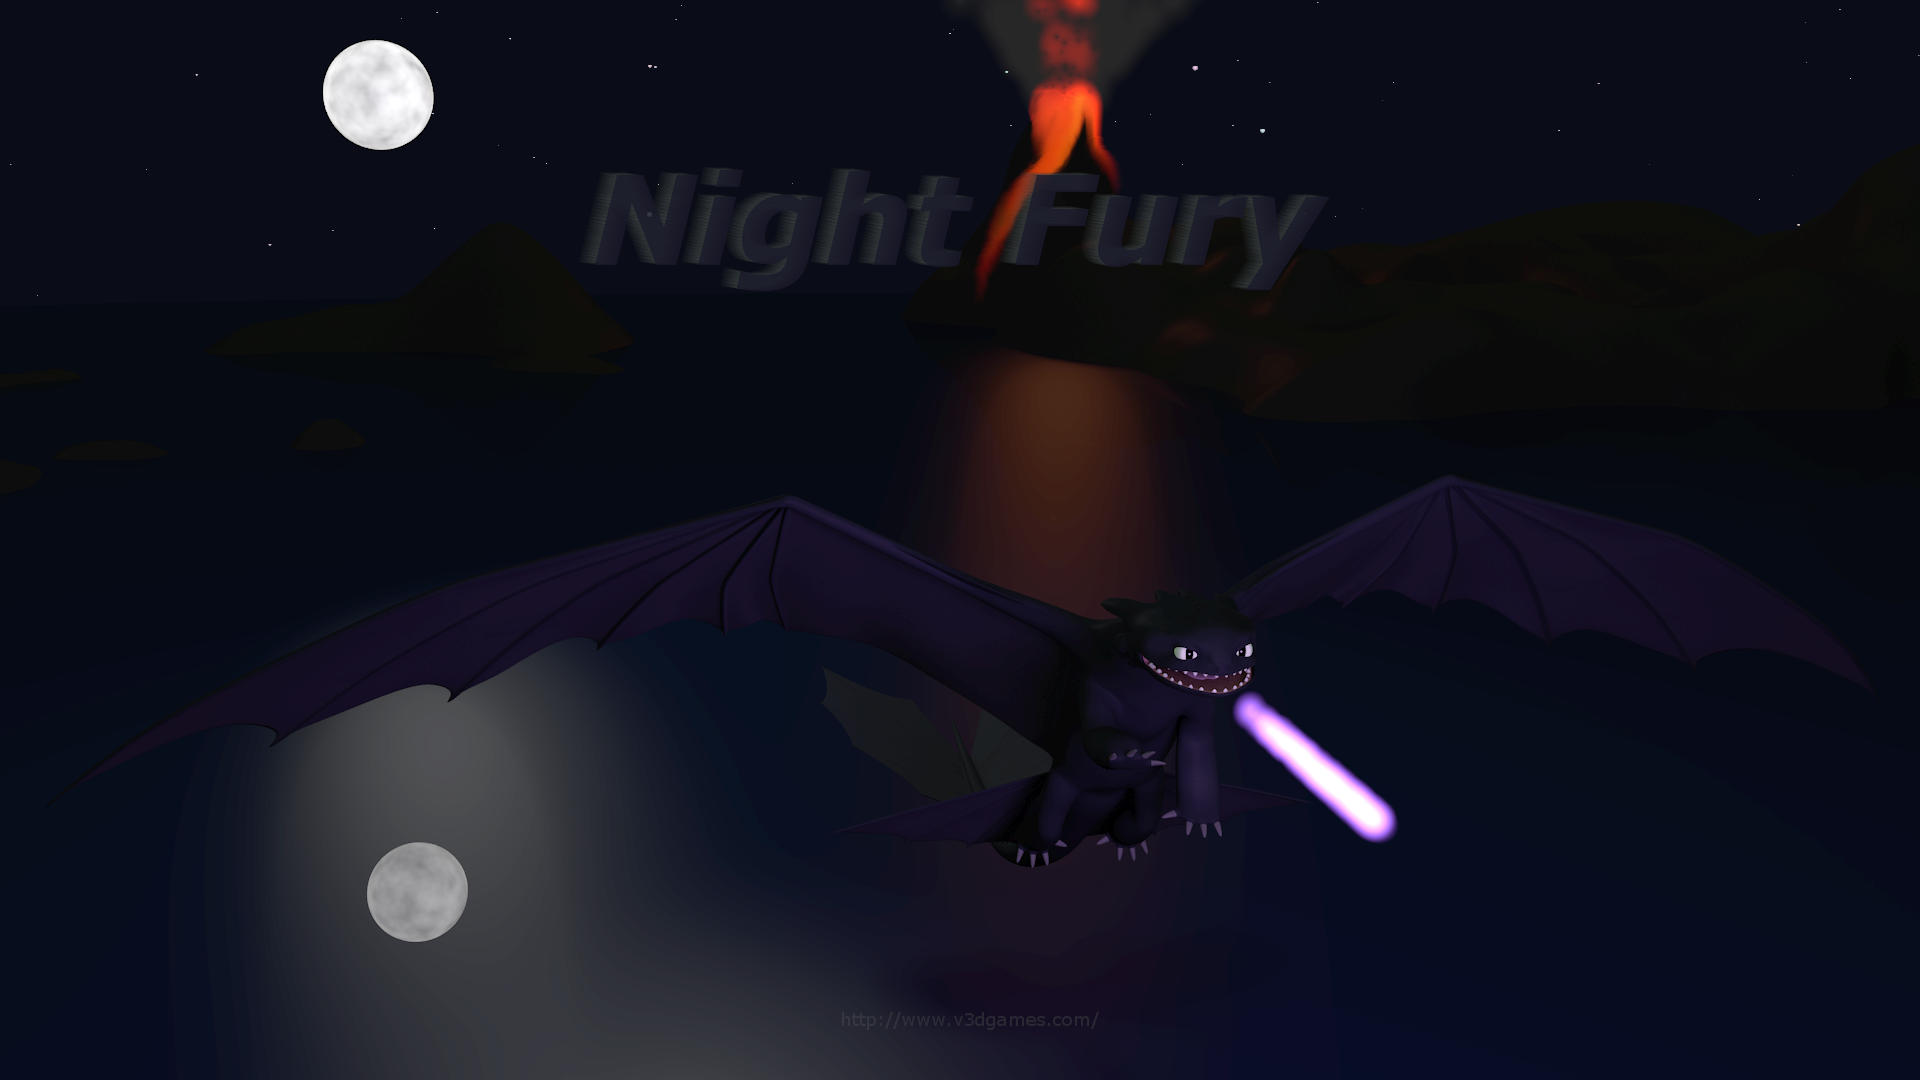 Night Fury - Night Flight r10